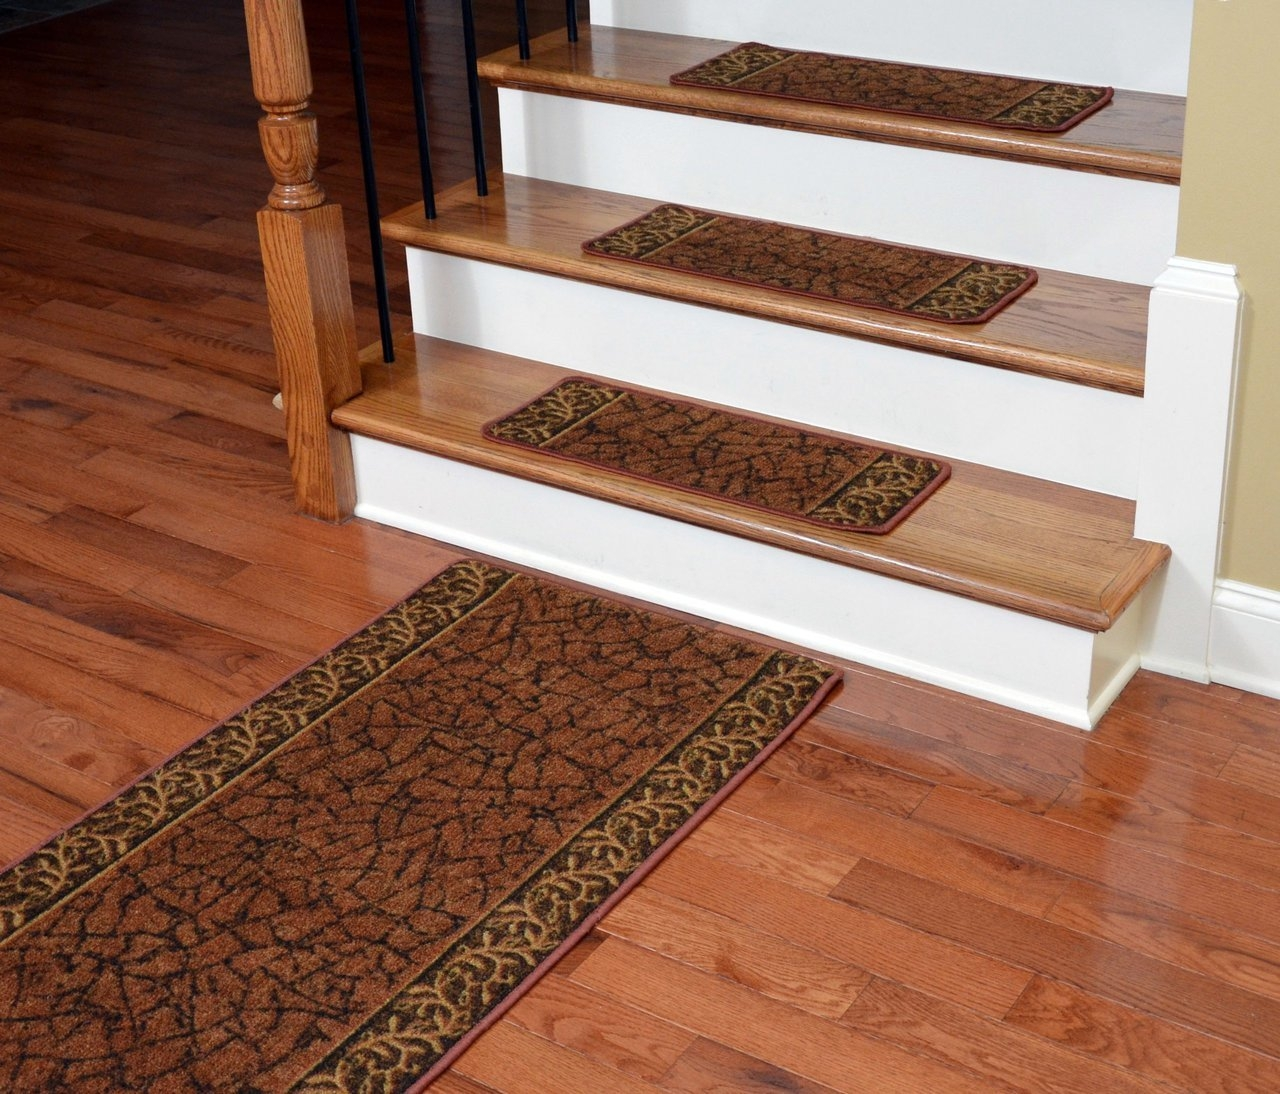 Dean Washable Non Skid Carpet Stair Treads Garden Path Terra With Non Skid Stair Treads Carpet (Image 5 of 15)